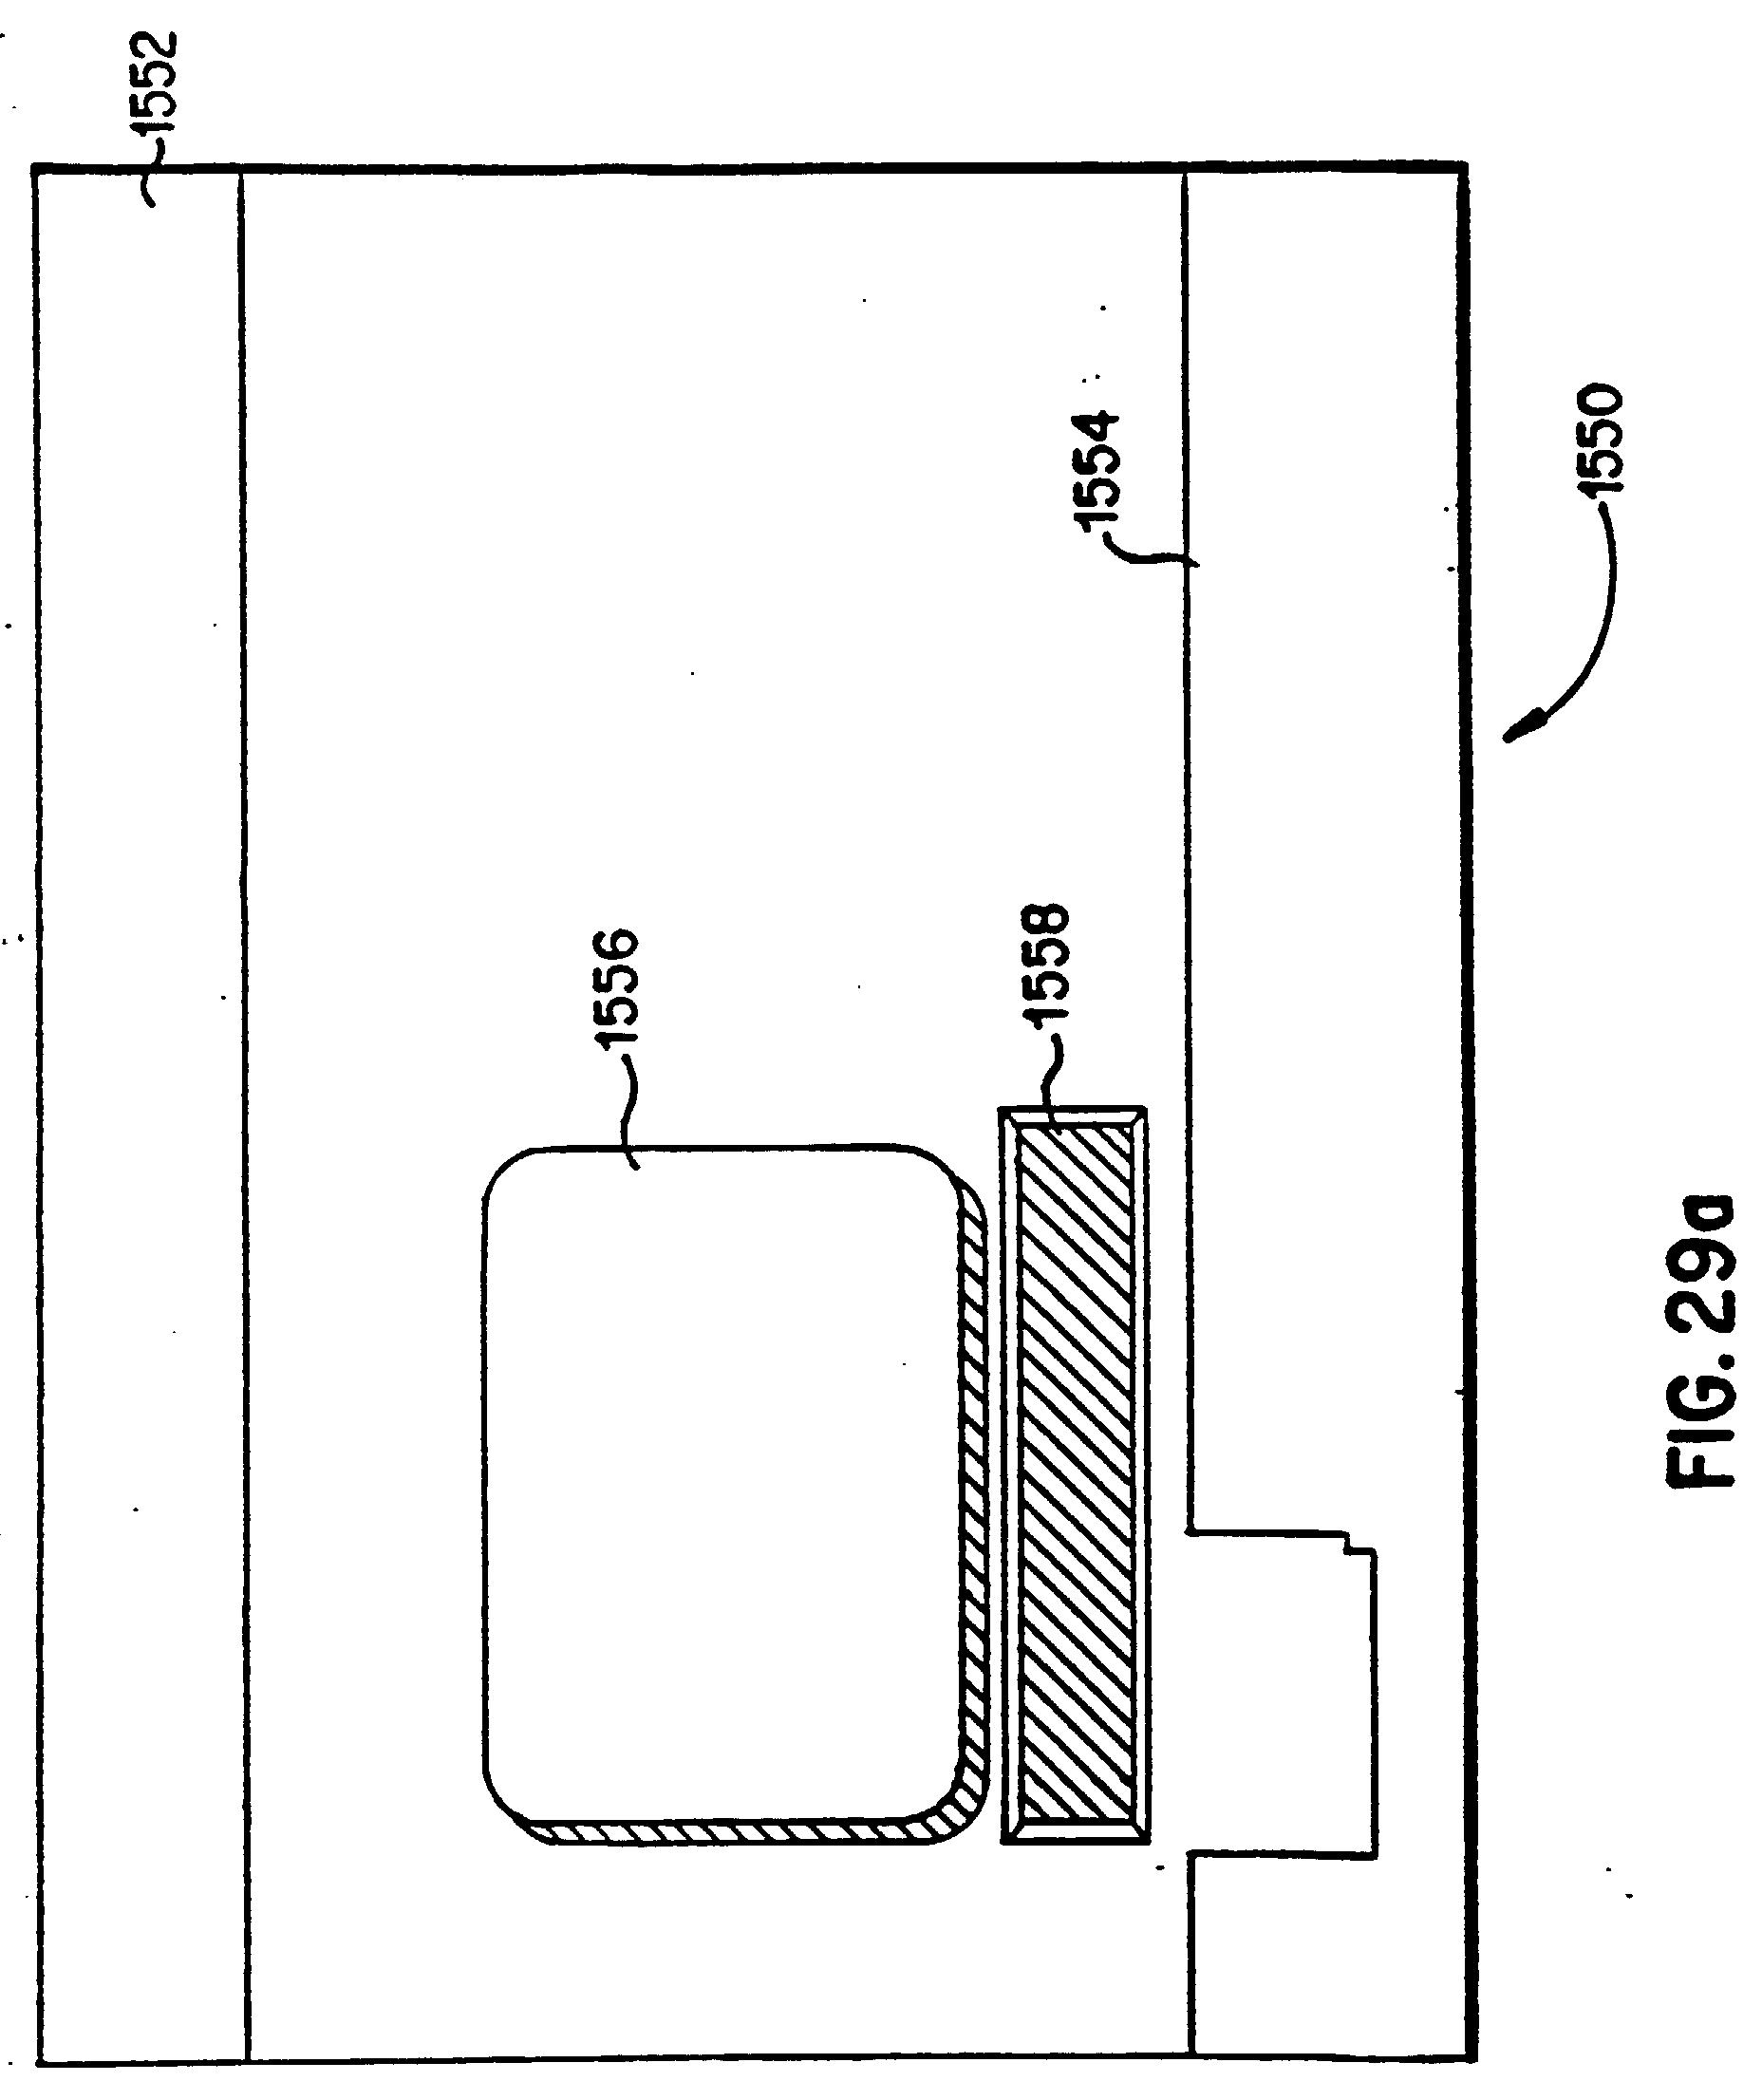 EP0935393A2 - Set top terminal for cable television delivery